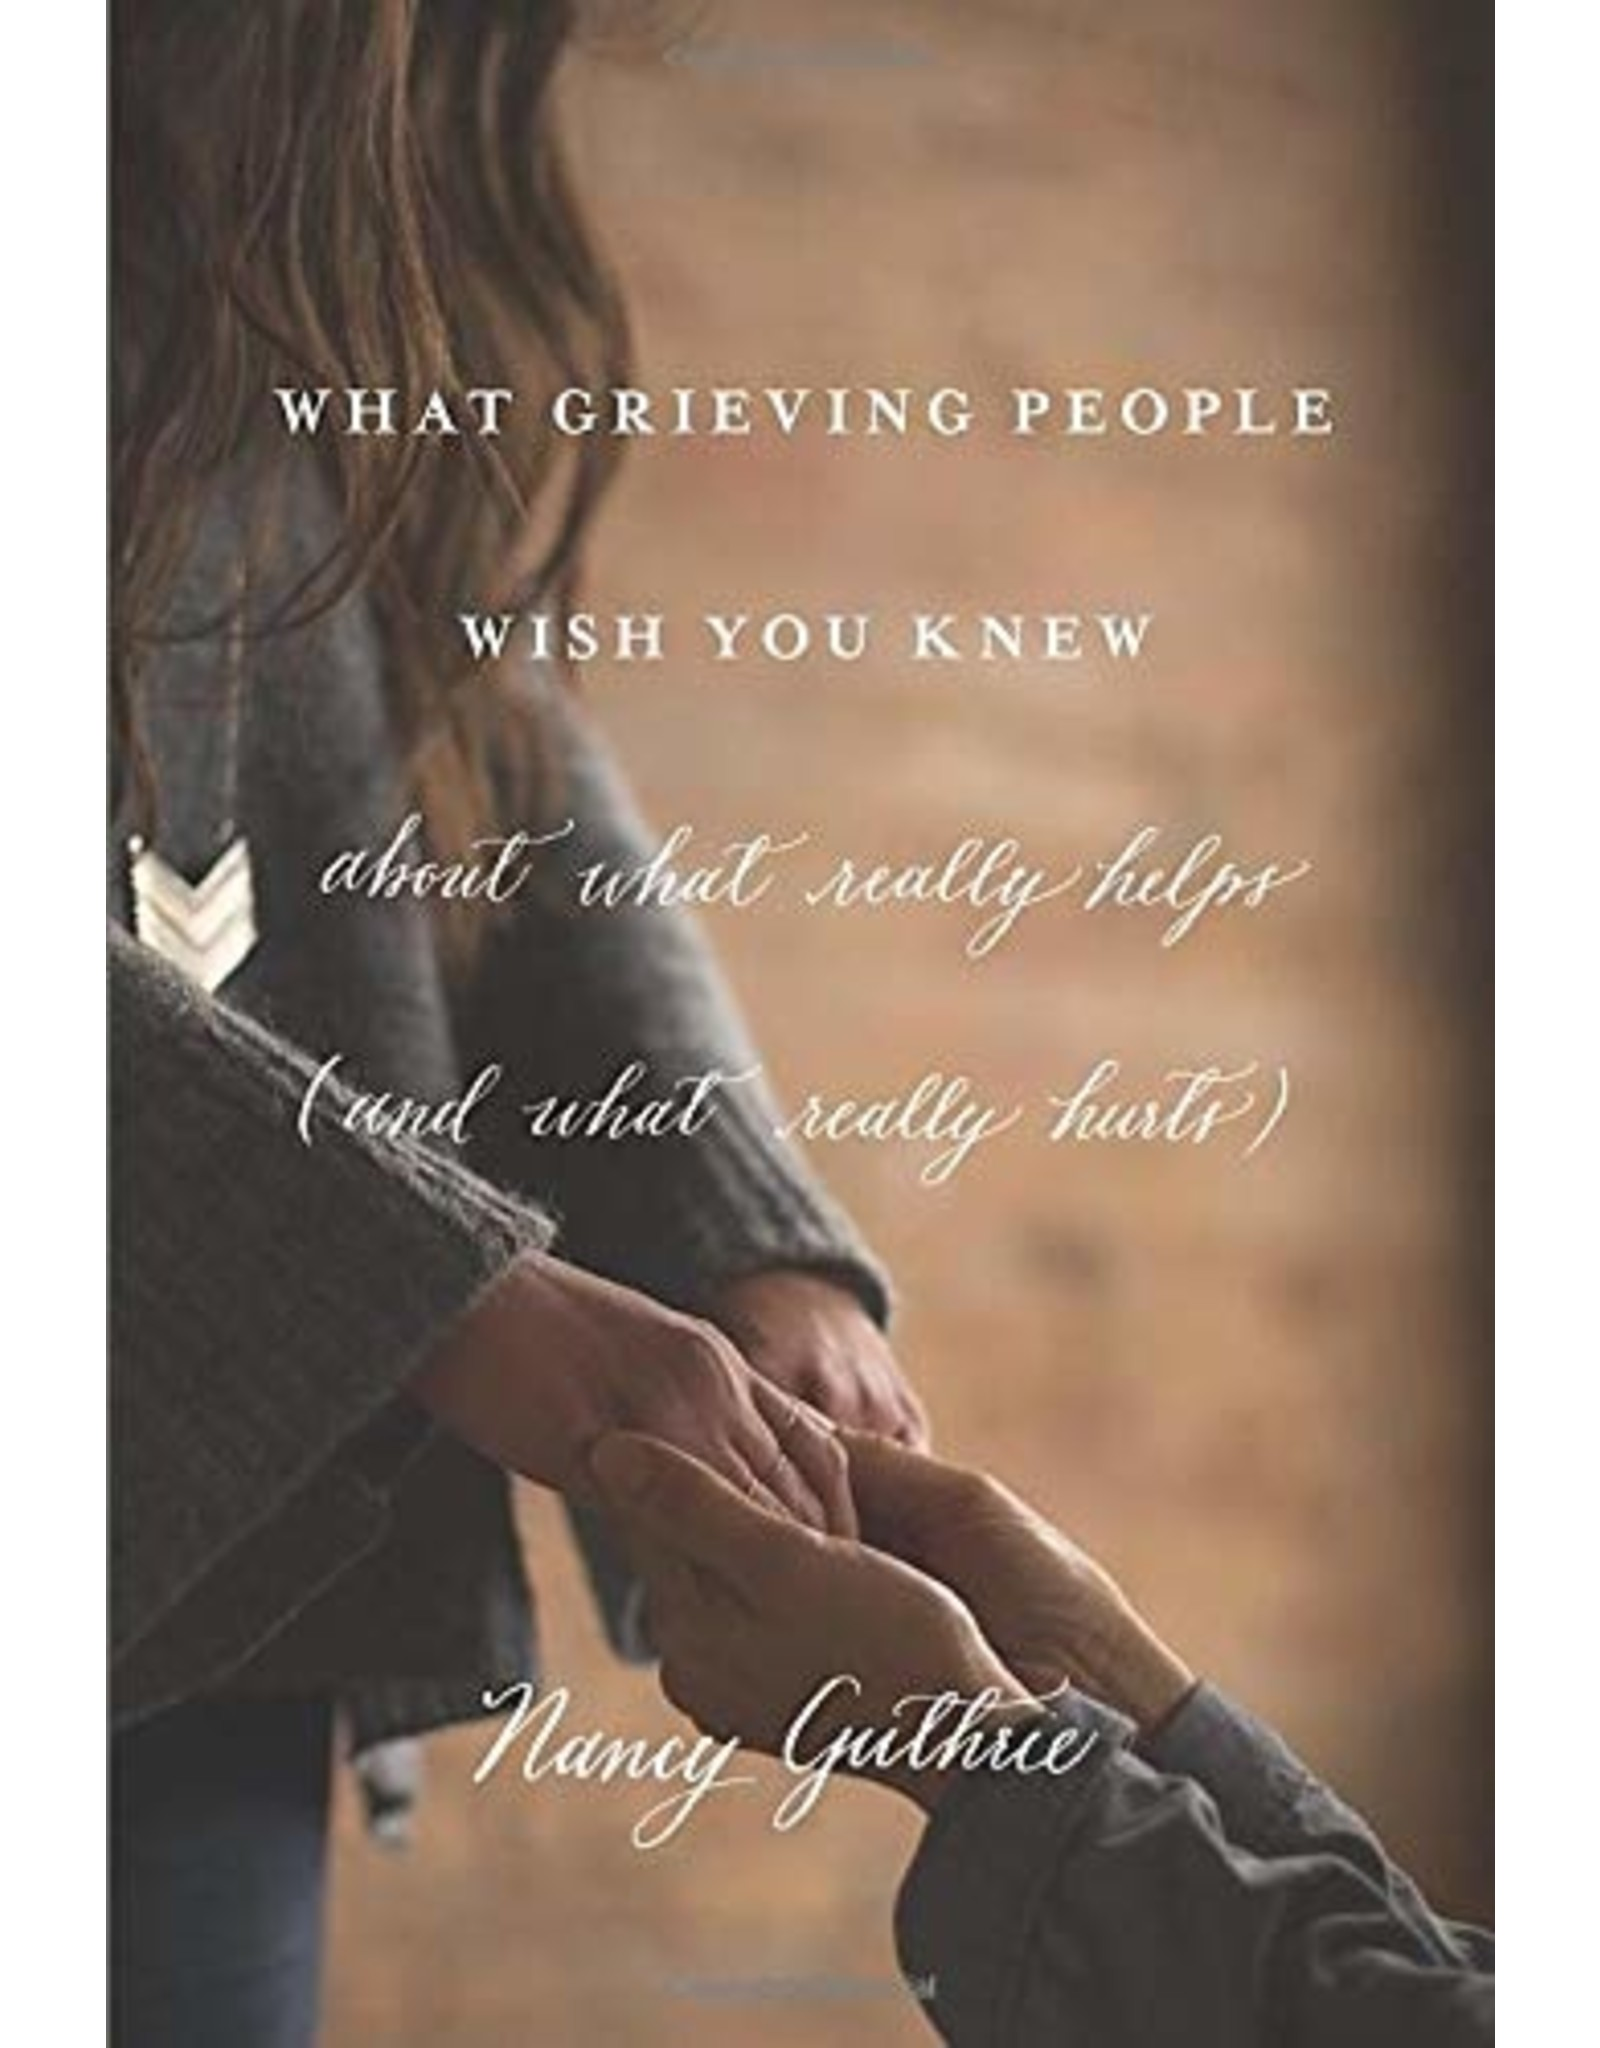 Crossway / Good News What Grieving People Wish You Knew About What